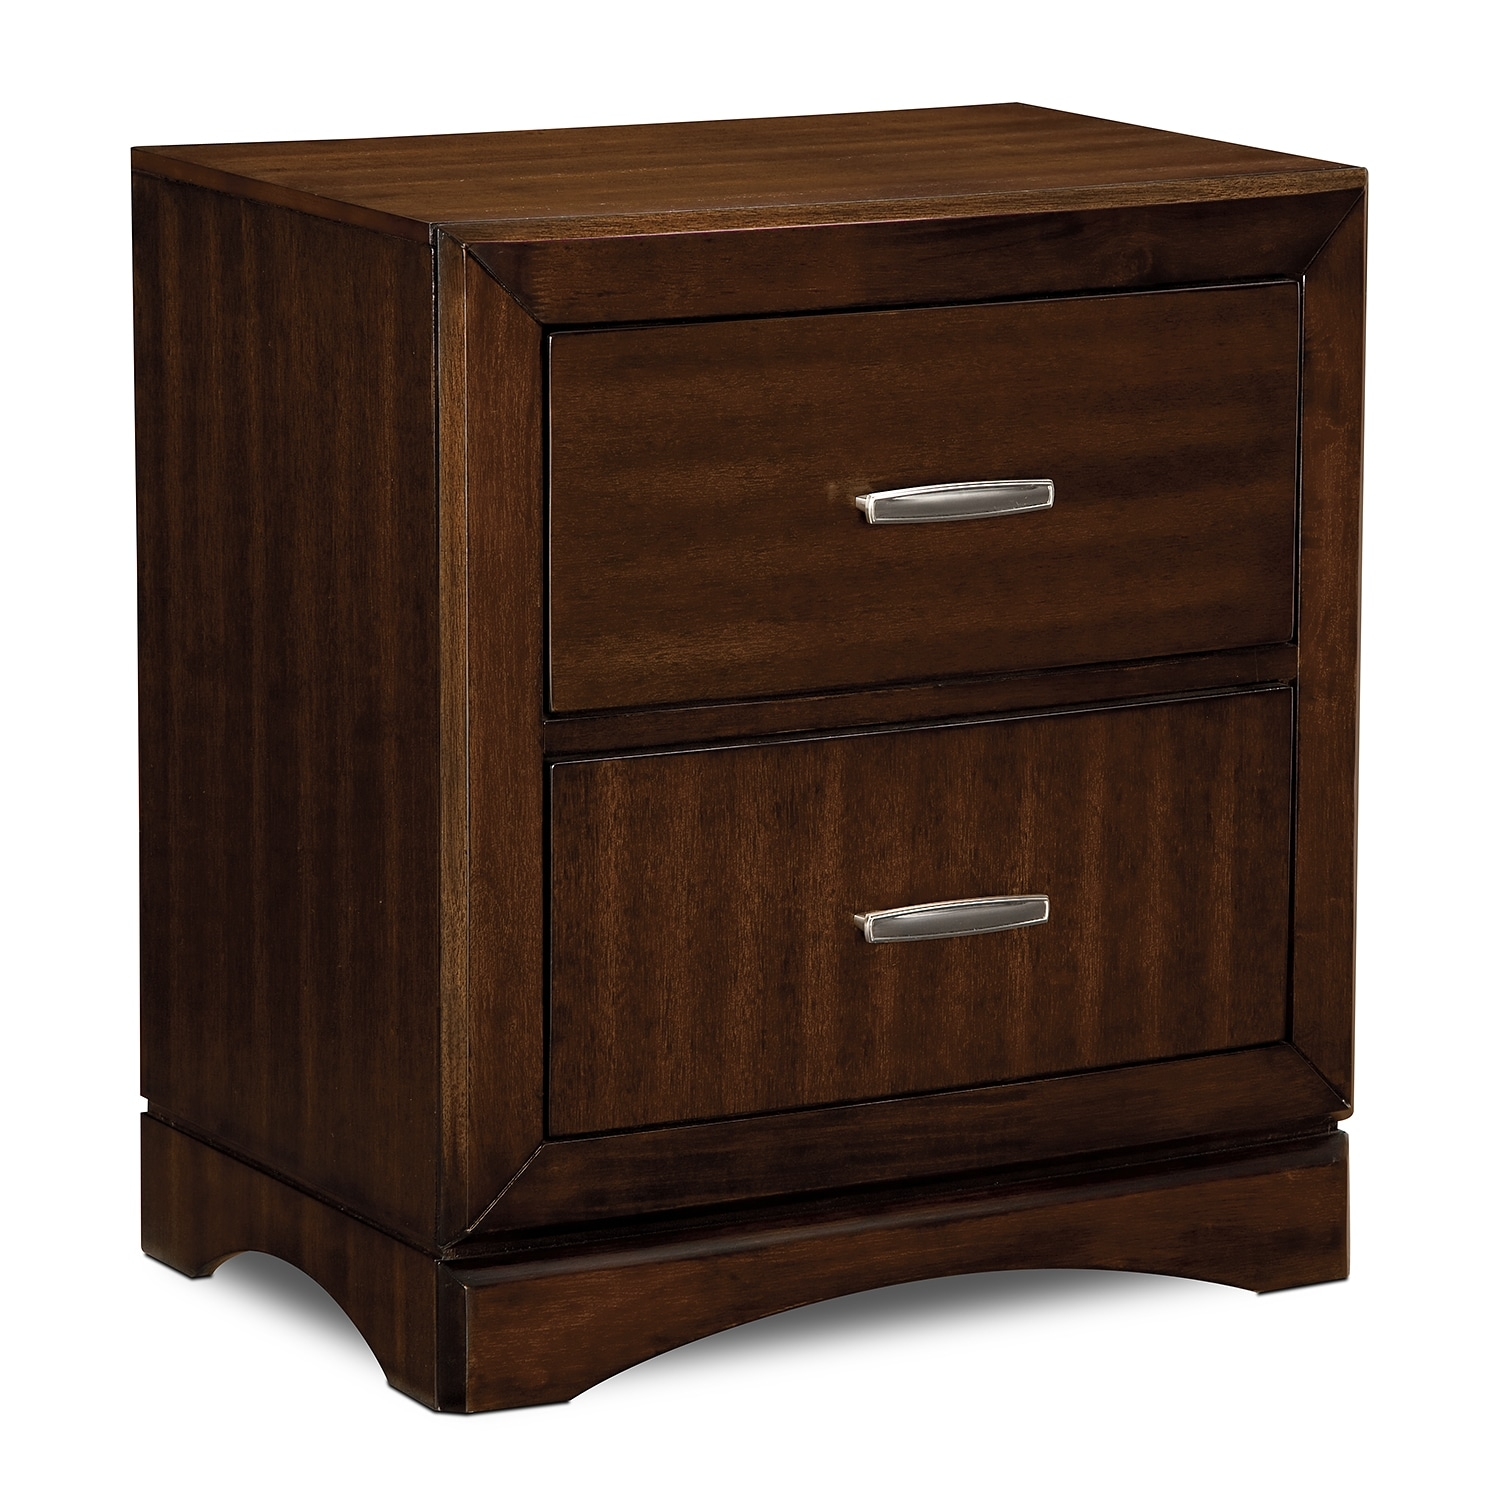 Toronto Nightstand Value City Furniture